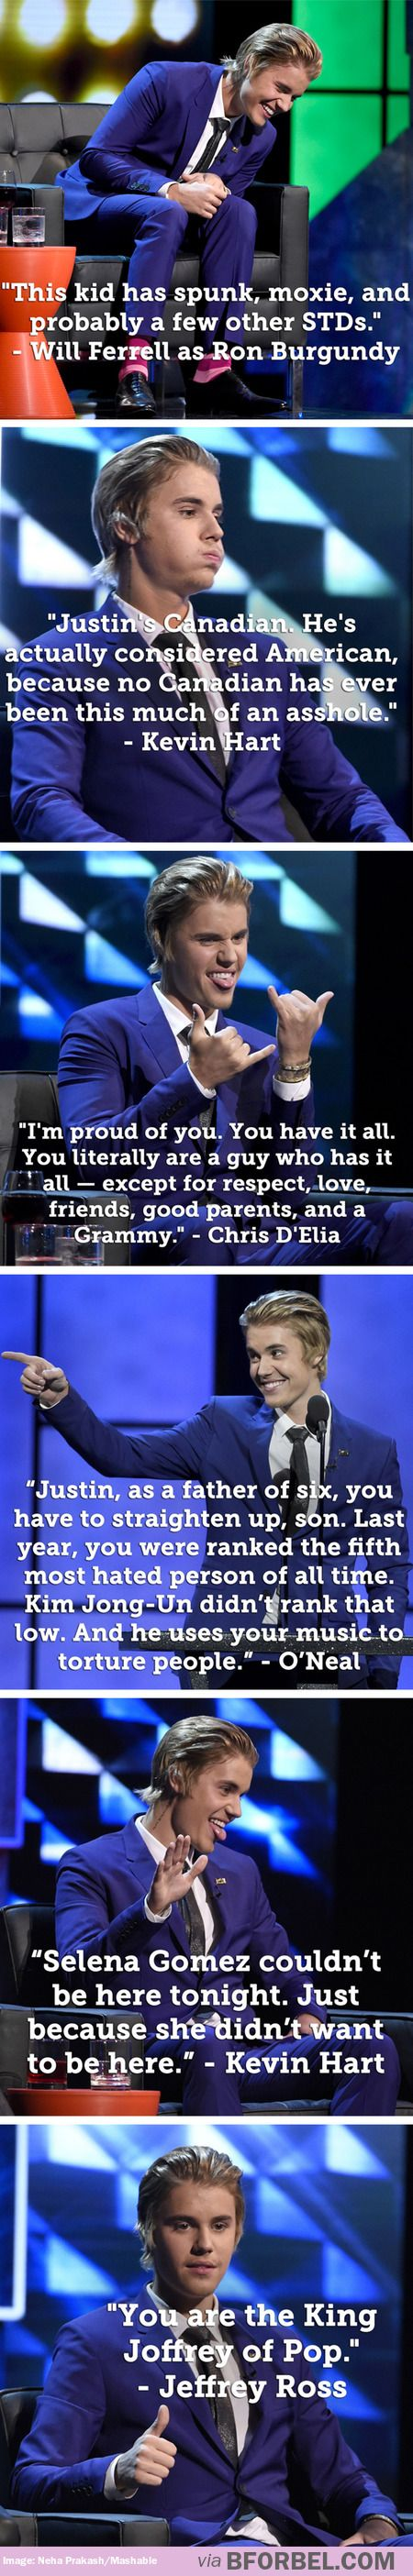 Some of the best jokes from the Justin Bieber roast